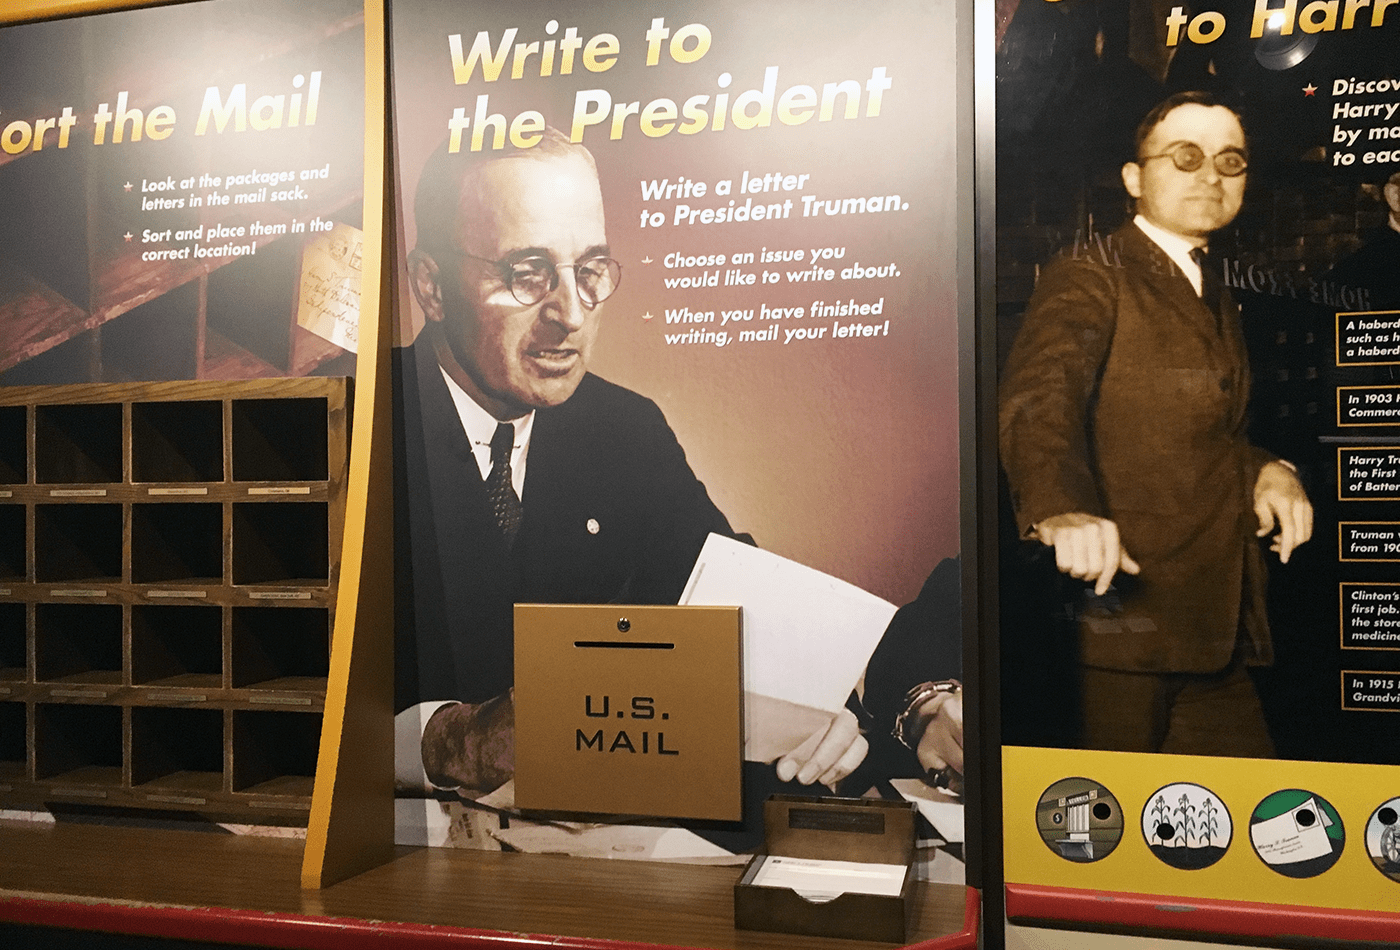 Write a letter to Harry S. Truman. Why not!